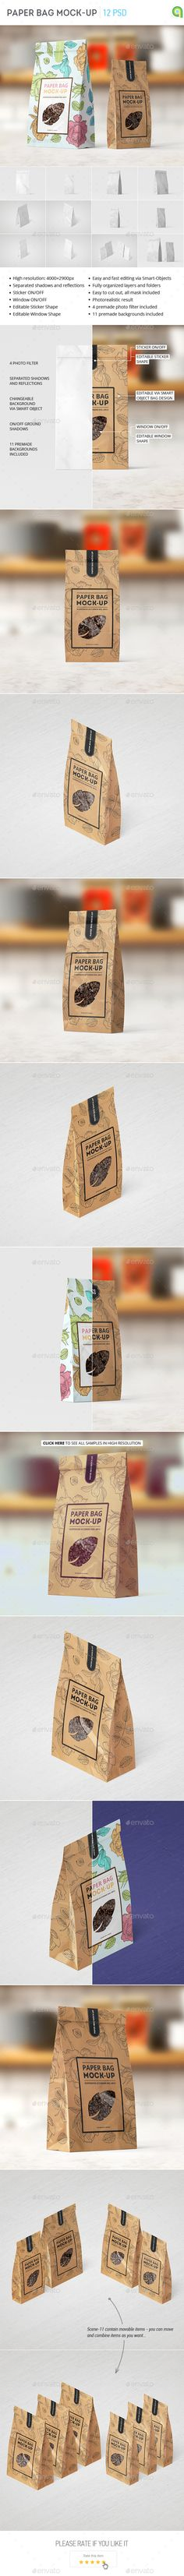 Paper Bag Mockup — Photoshop PSD #showcase #cookies • Available here → https://graphicriver.net/item/paper-bag-mockup/15486071?ref=pxcr